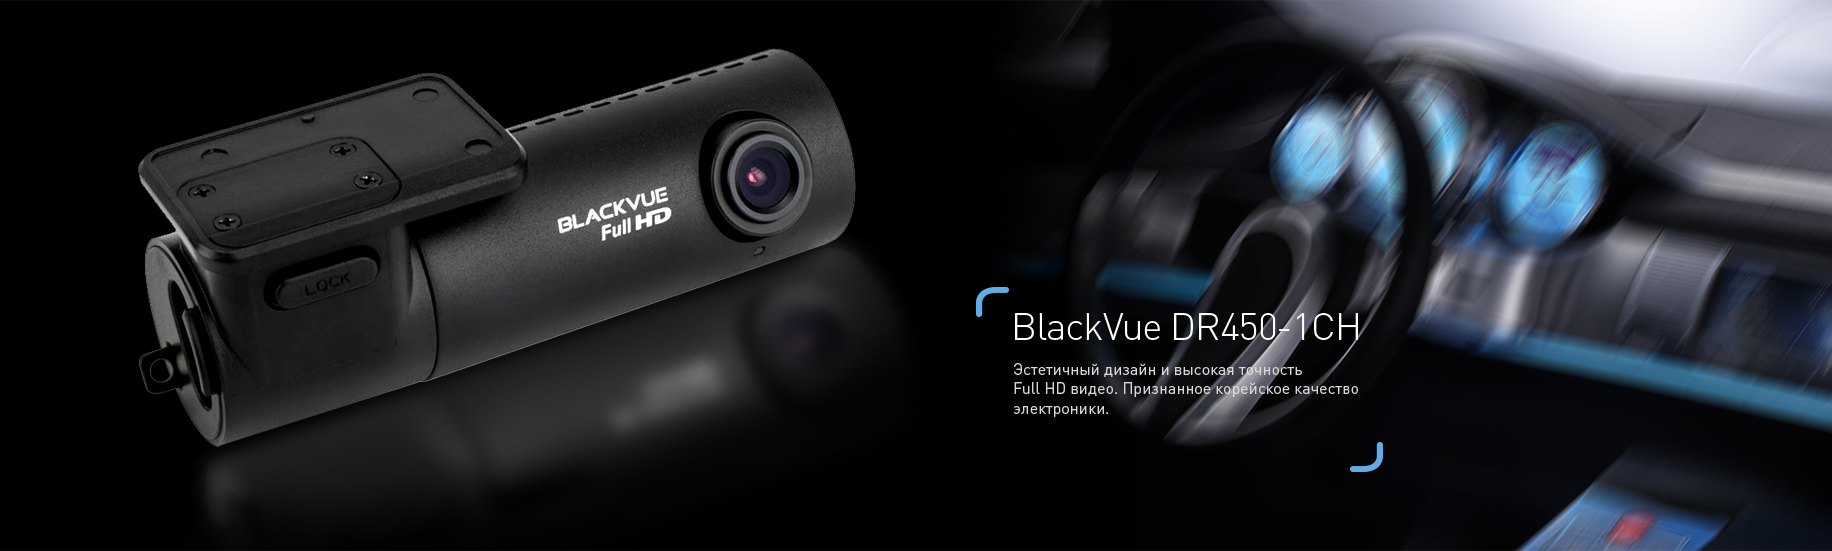 BlackVue DR450-1CH GPS(4).png